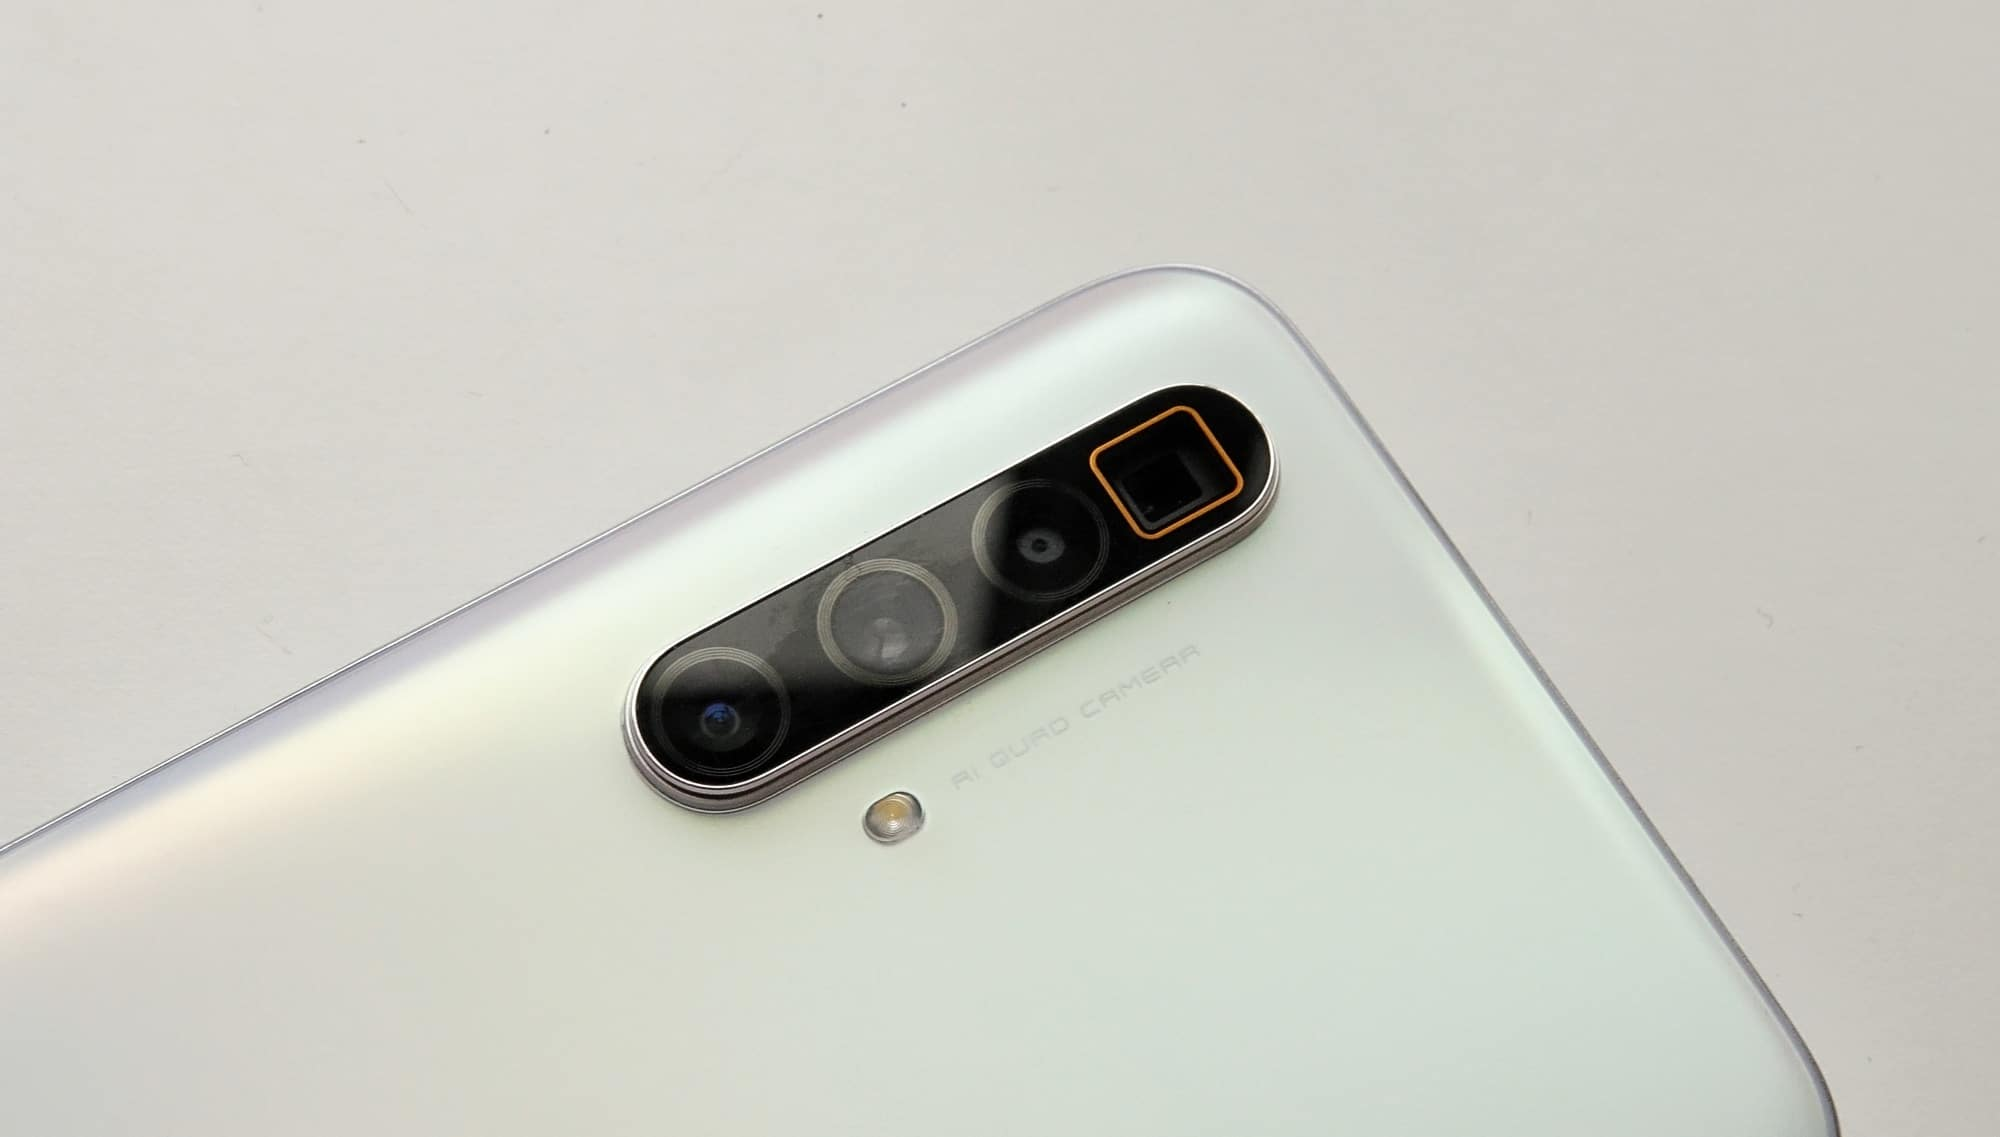 The camera on the Realme X3 SuperZoom